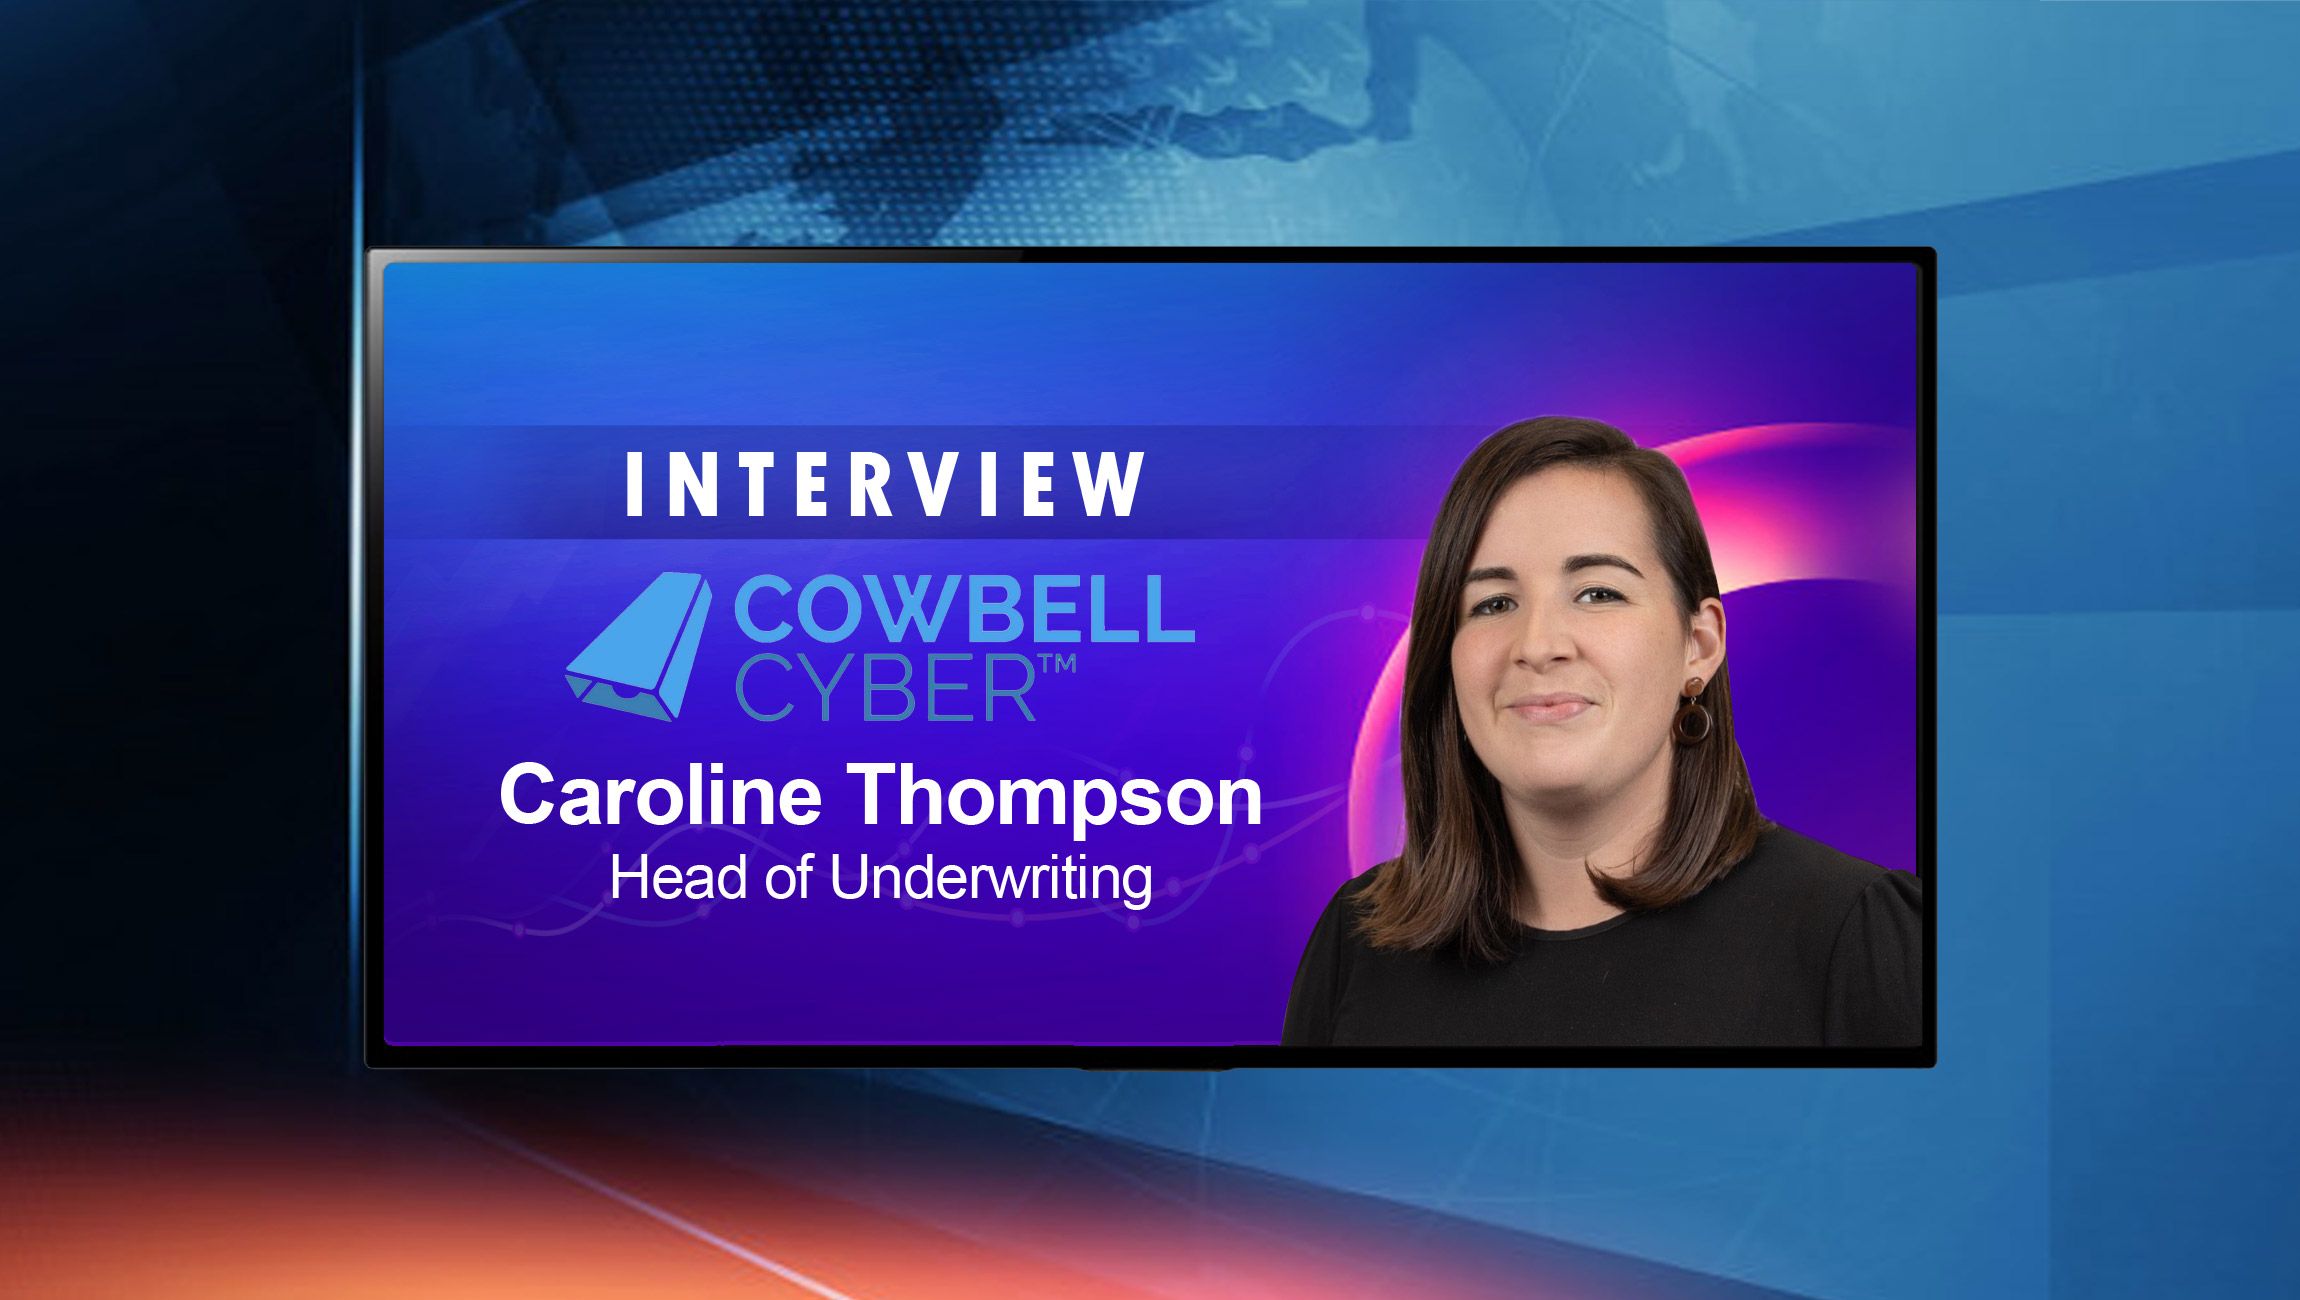 SalesTechStar Interview with Caroline Thompson, Head of Underwriting at Cowbell Cyber